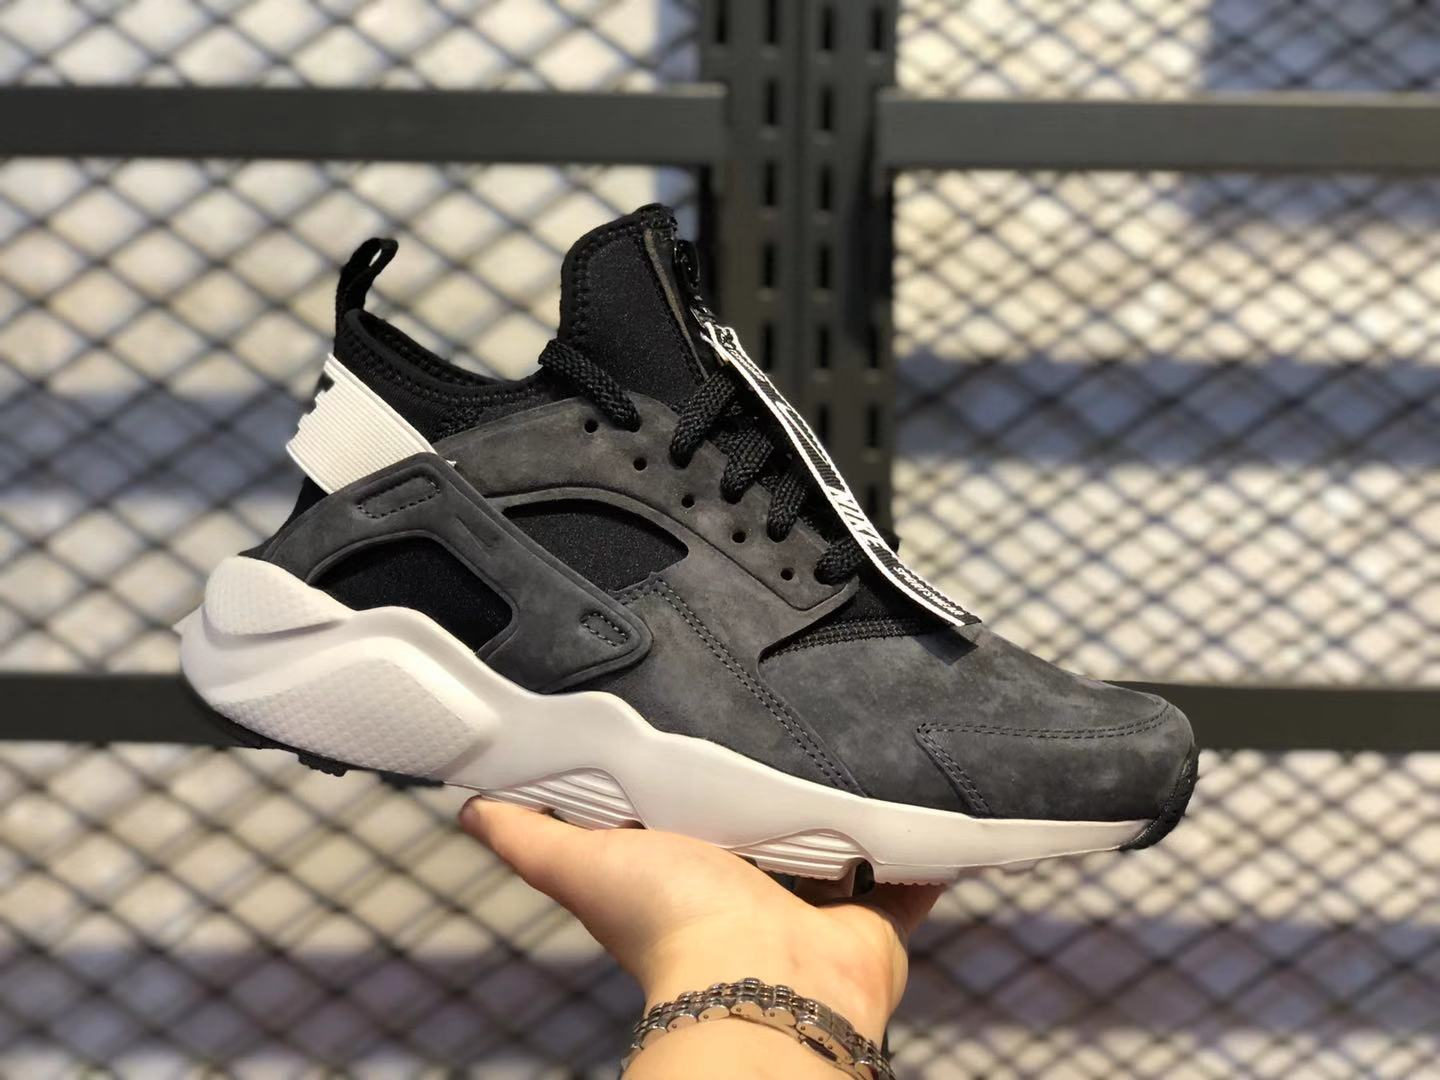 Nike Air Huarache Run Ultra Dark Grey/Core Black-White 829669-558 In Stock